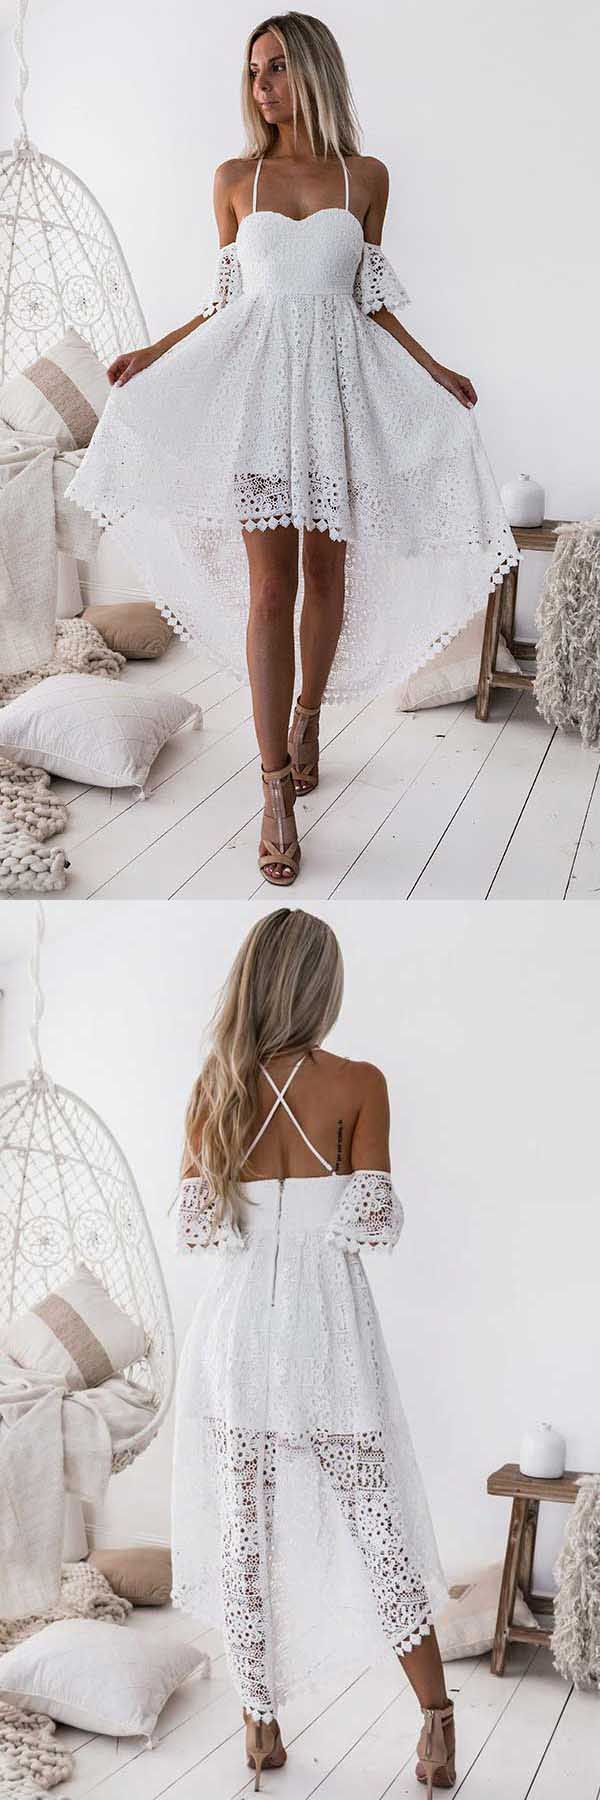 A-Line Straps Off-the-shoulder High Low White Lace Homecoming Dress PD013